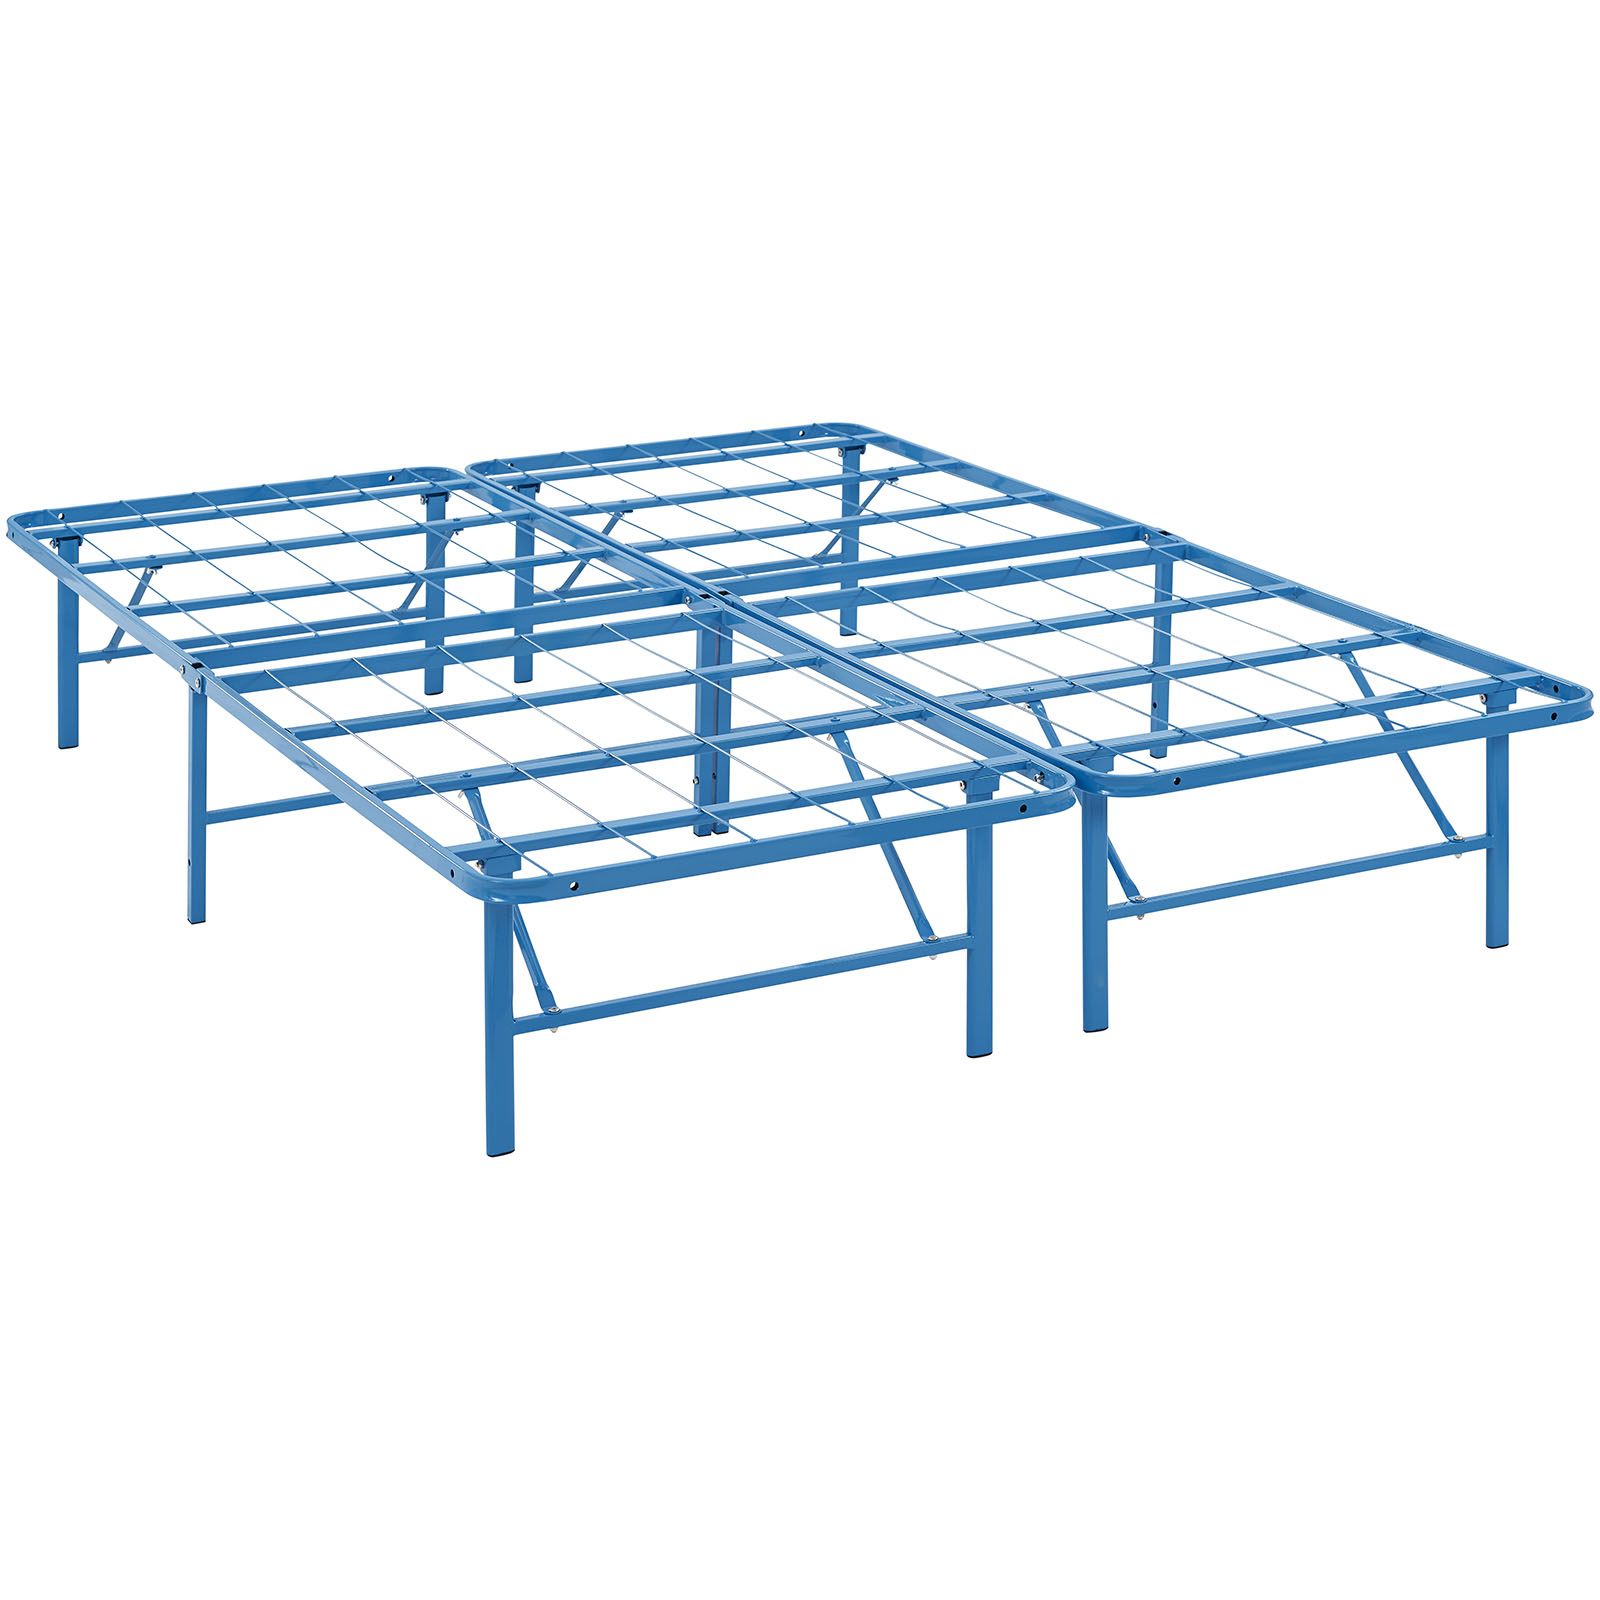 Modern Contemporary Urban Design Bedroom Full Size Platform Bed Frame, Blue, Metal Steel